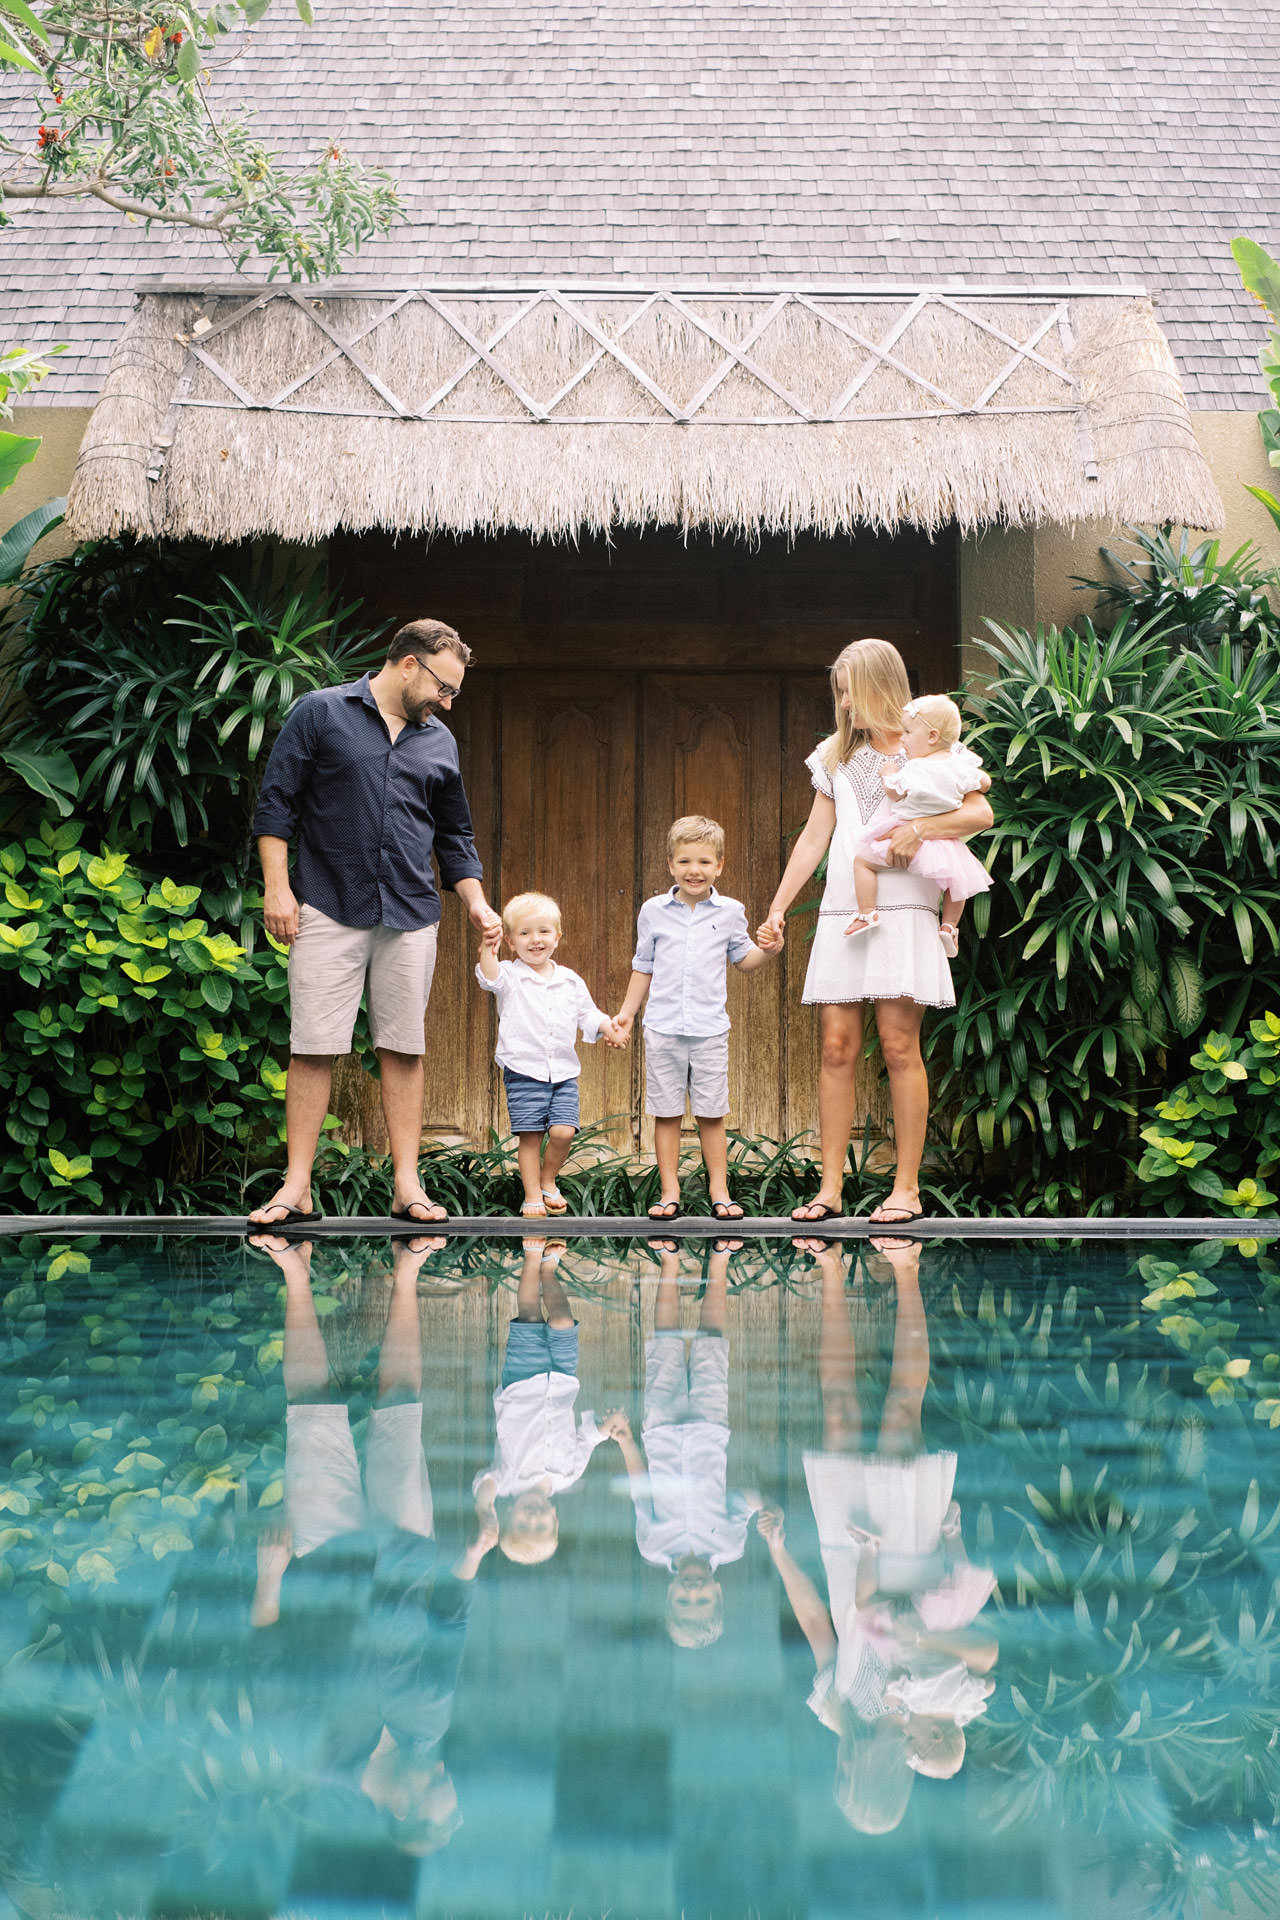 Bali Family Photographer - Fun Family Vacation in Bali 1